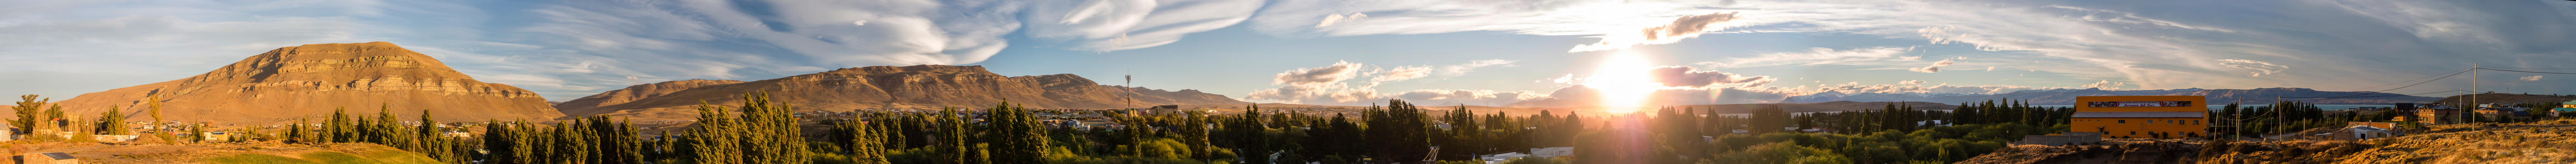 El Calafate Town Sunset - A full 360 degree view of the mountains basked in sunset above the town of El Calafate